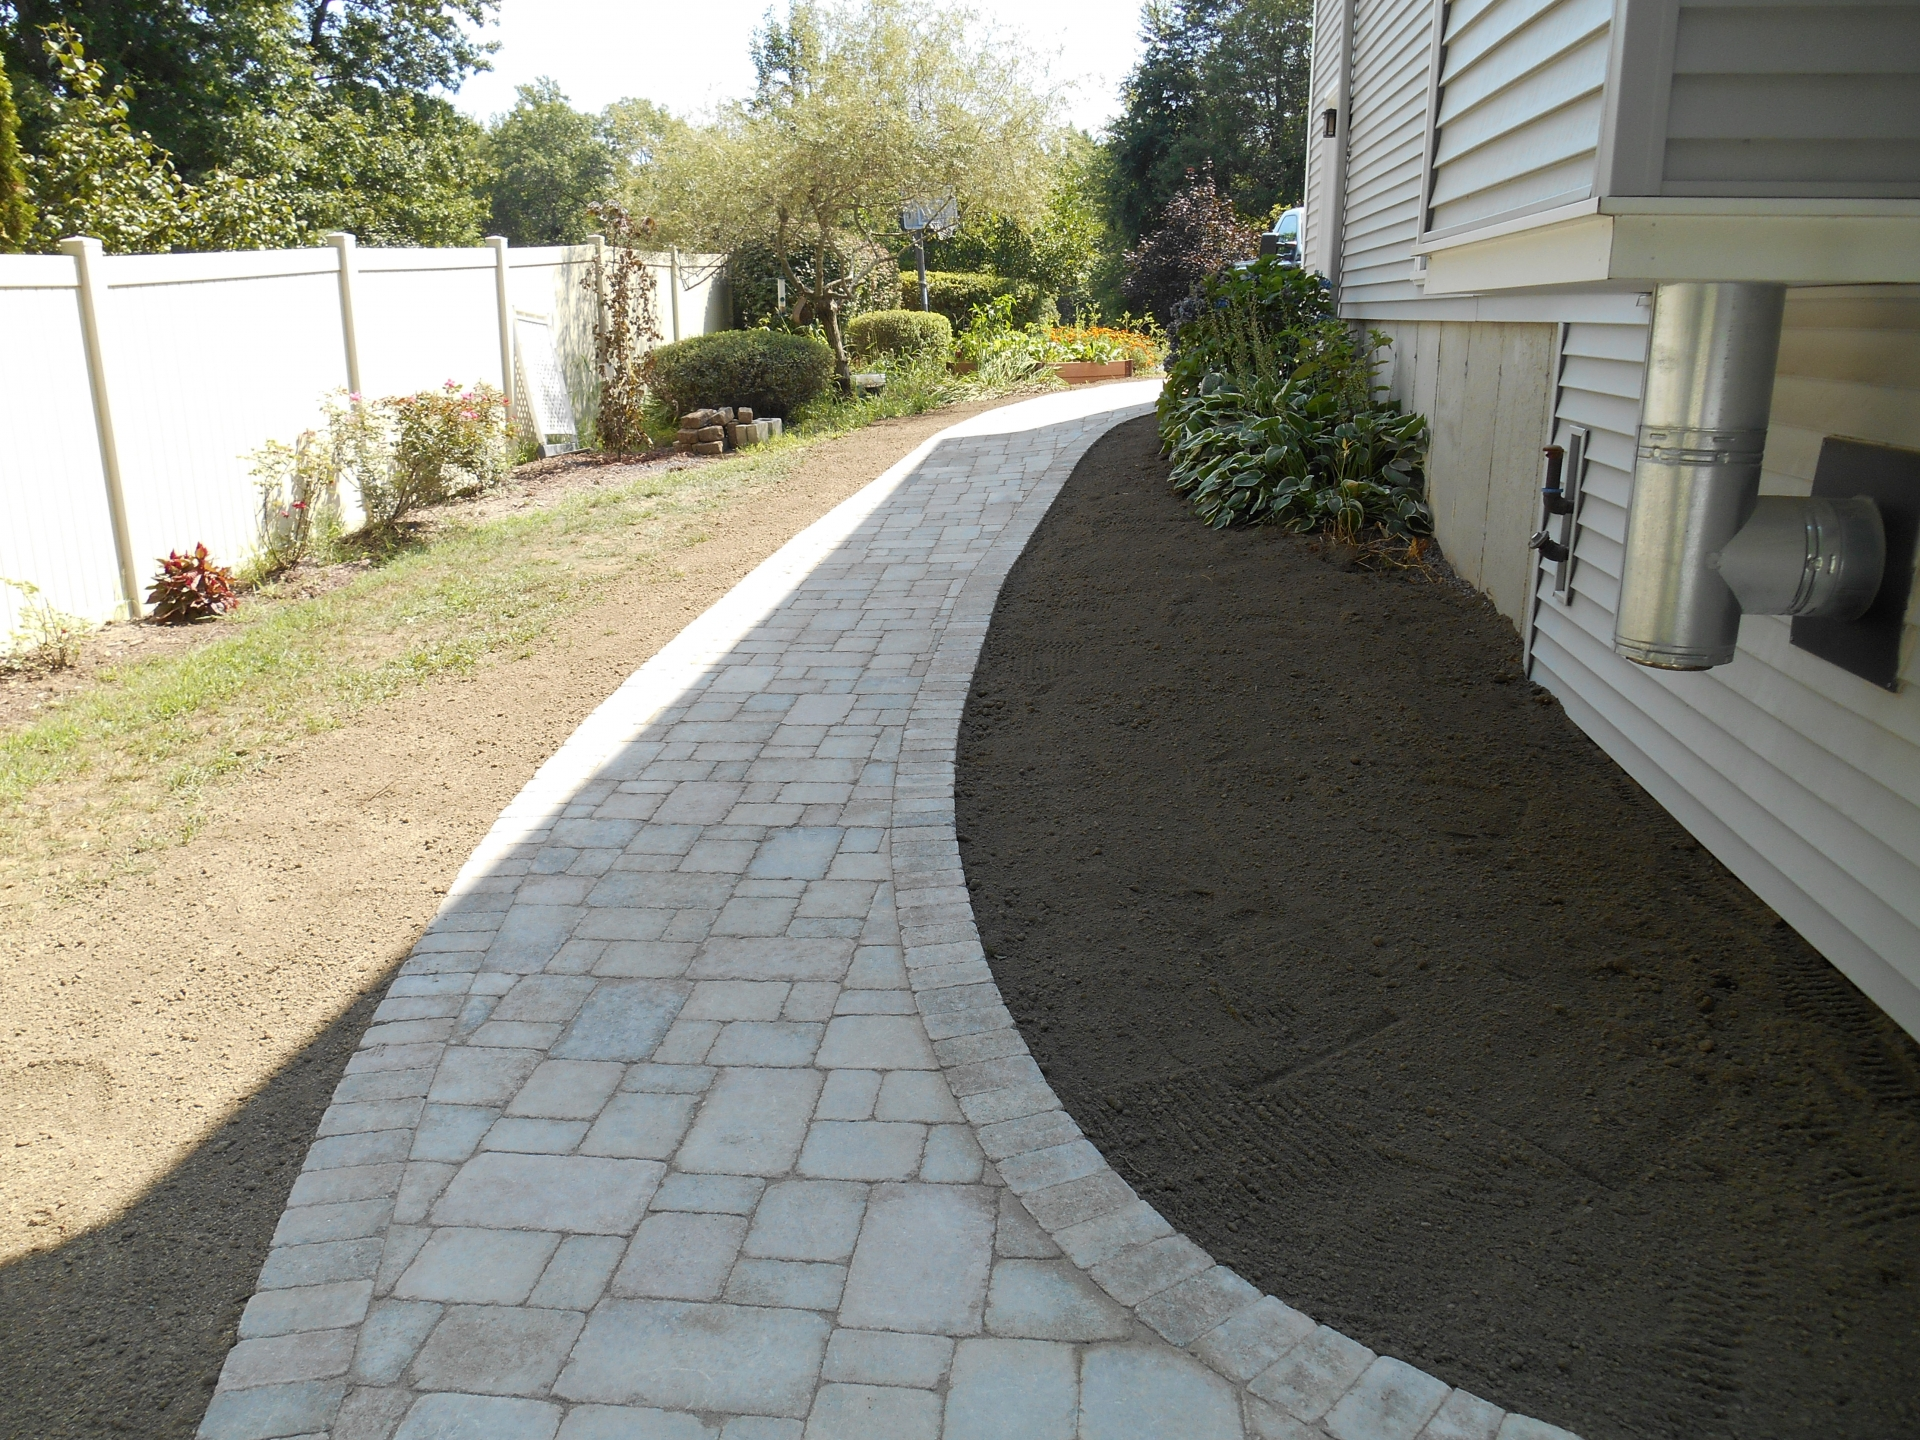 Fans Blocking Walkways : Landscape and masonry contractor trac landscaping in